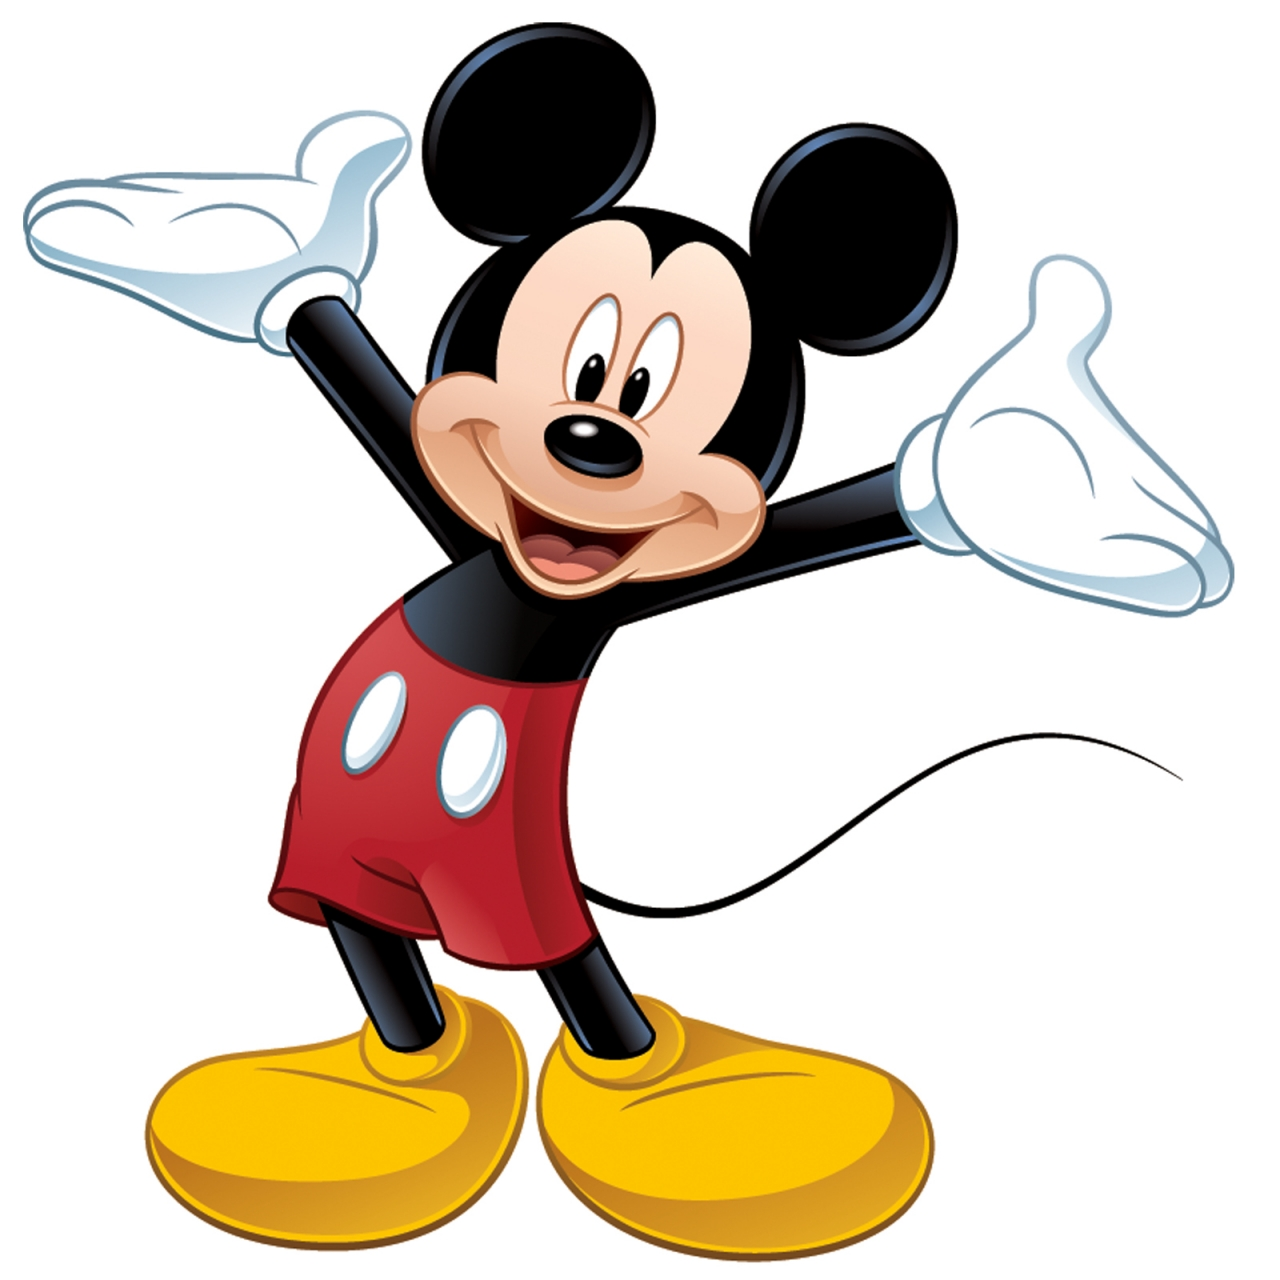 Download Mickey Mouse - Mickey mouse cartoon images free download clip art jpg ...